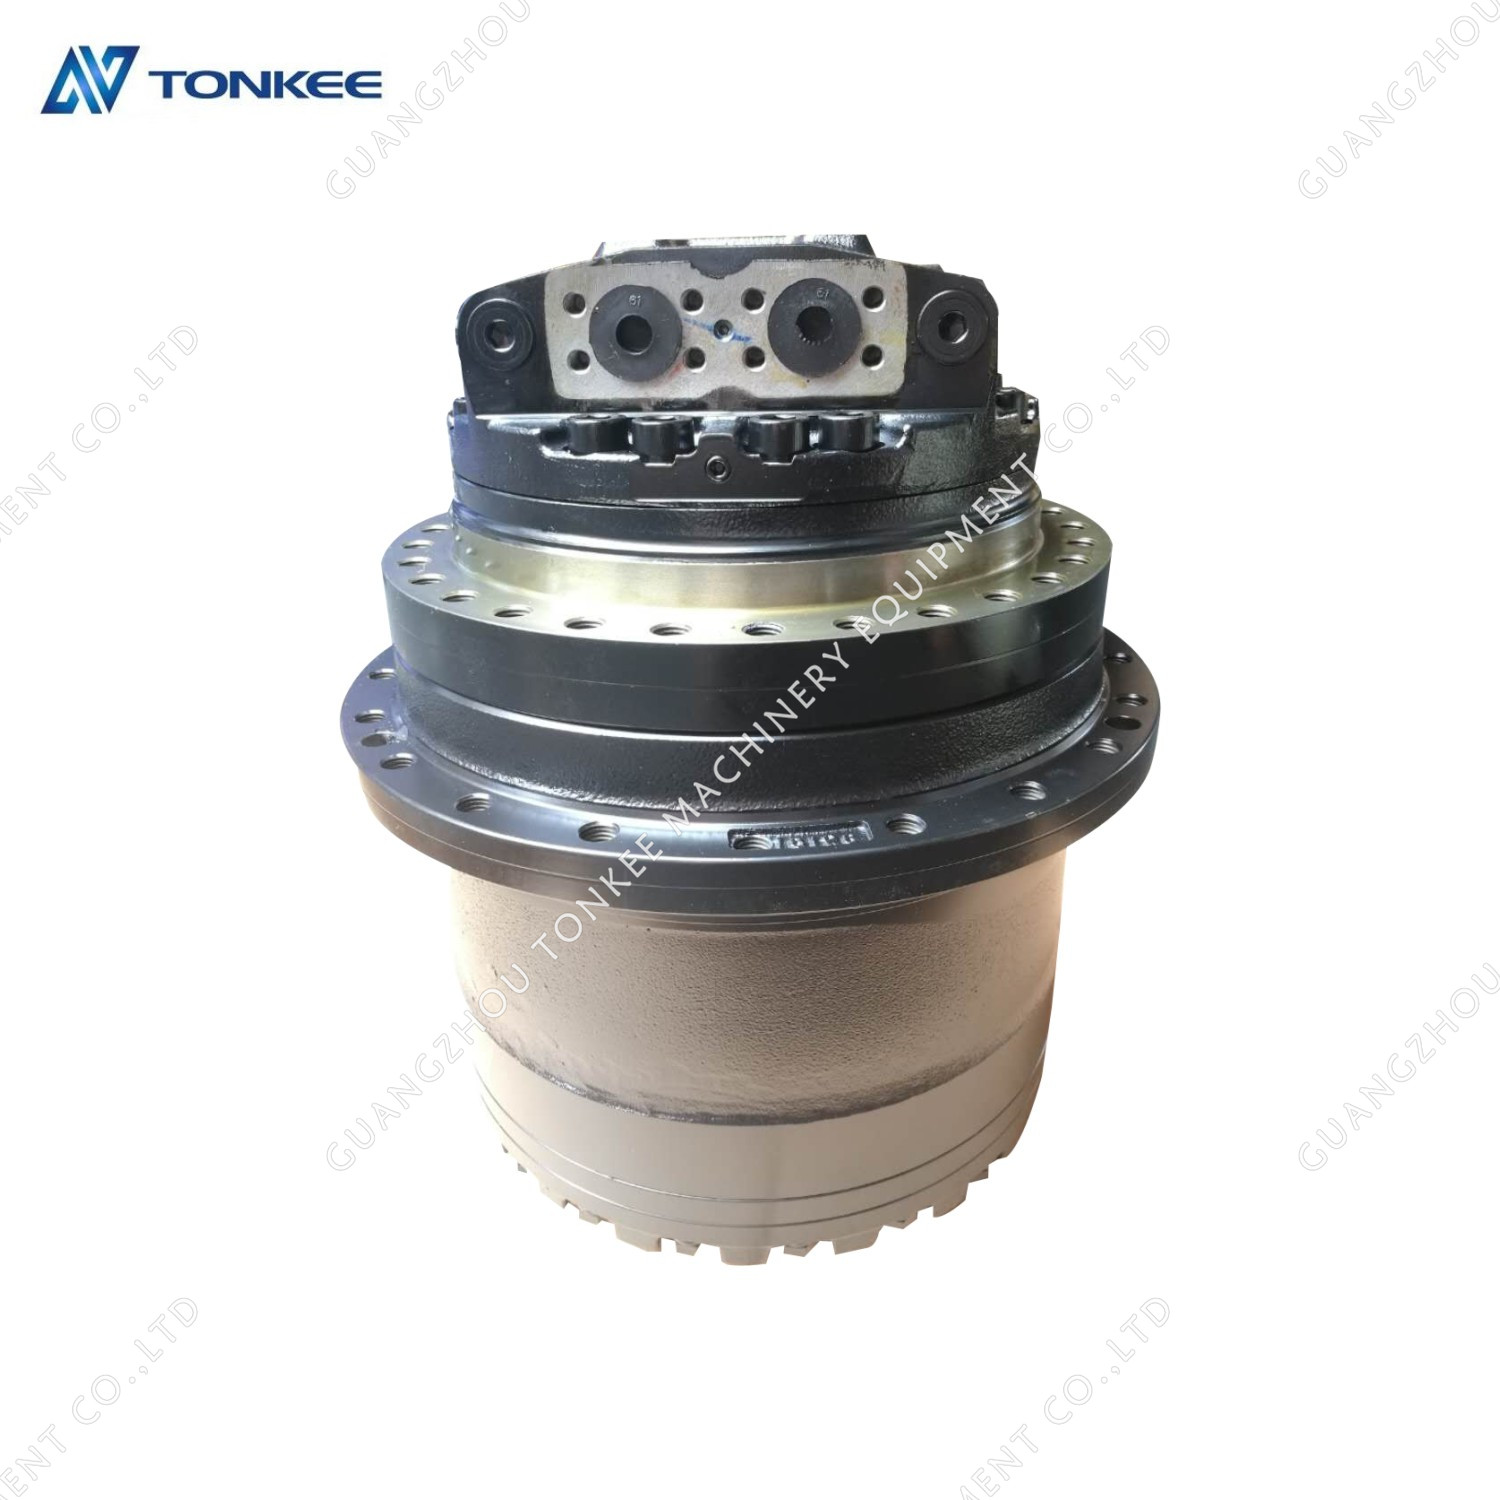 genuine new DOOSAN 67684001 final drive group R160LC R160 travel motor assy for HYUNDAI excavator